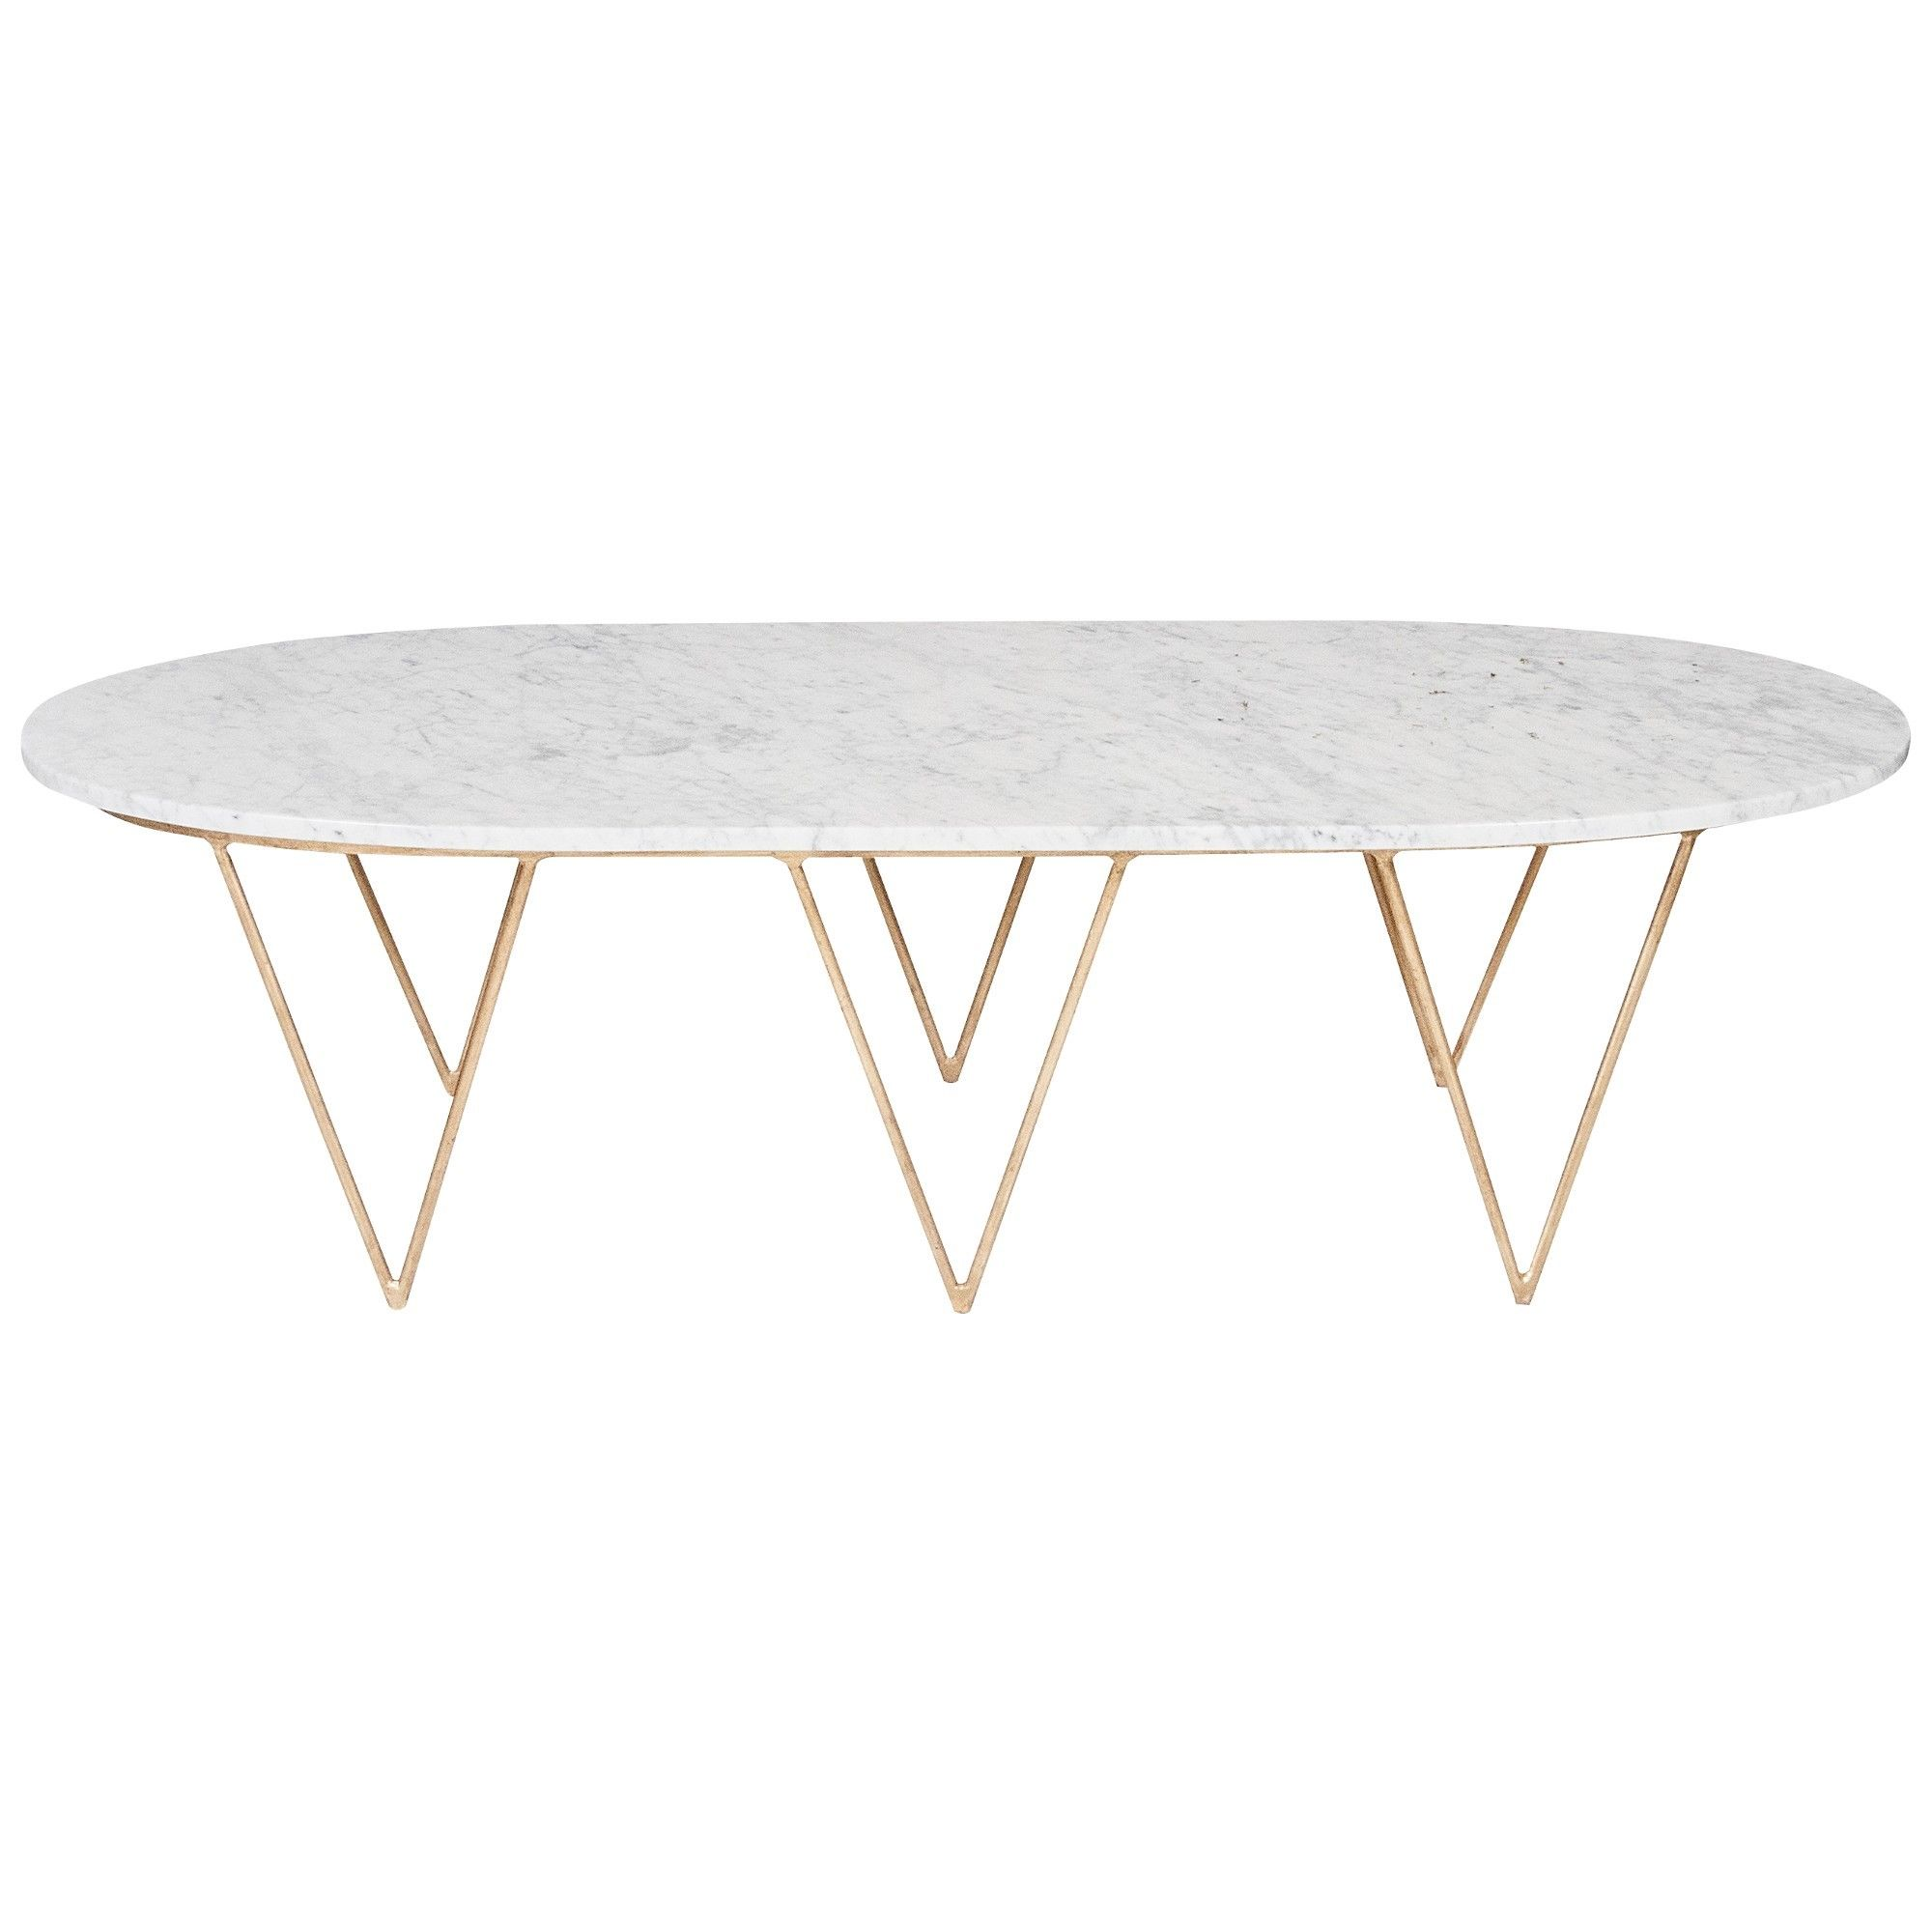 Furniture Oval Unique White Marble Top Coffee Table Ideas For